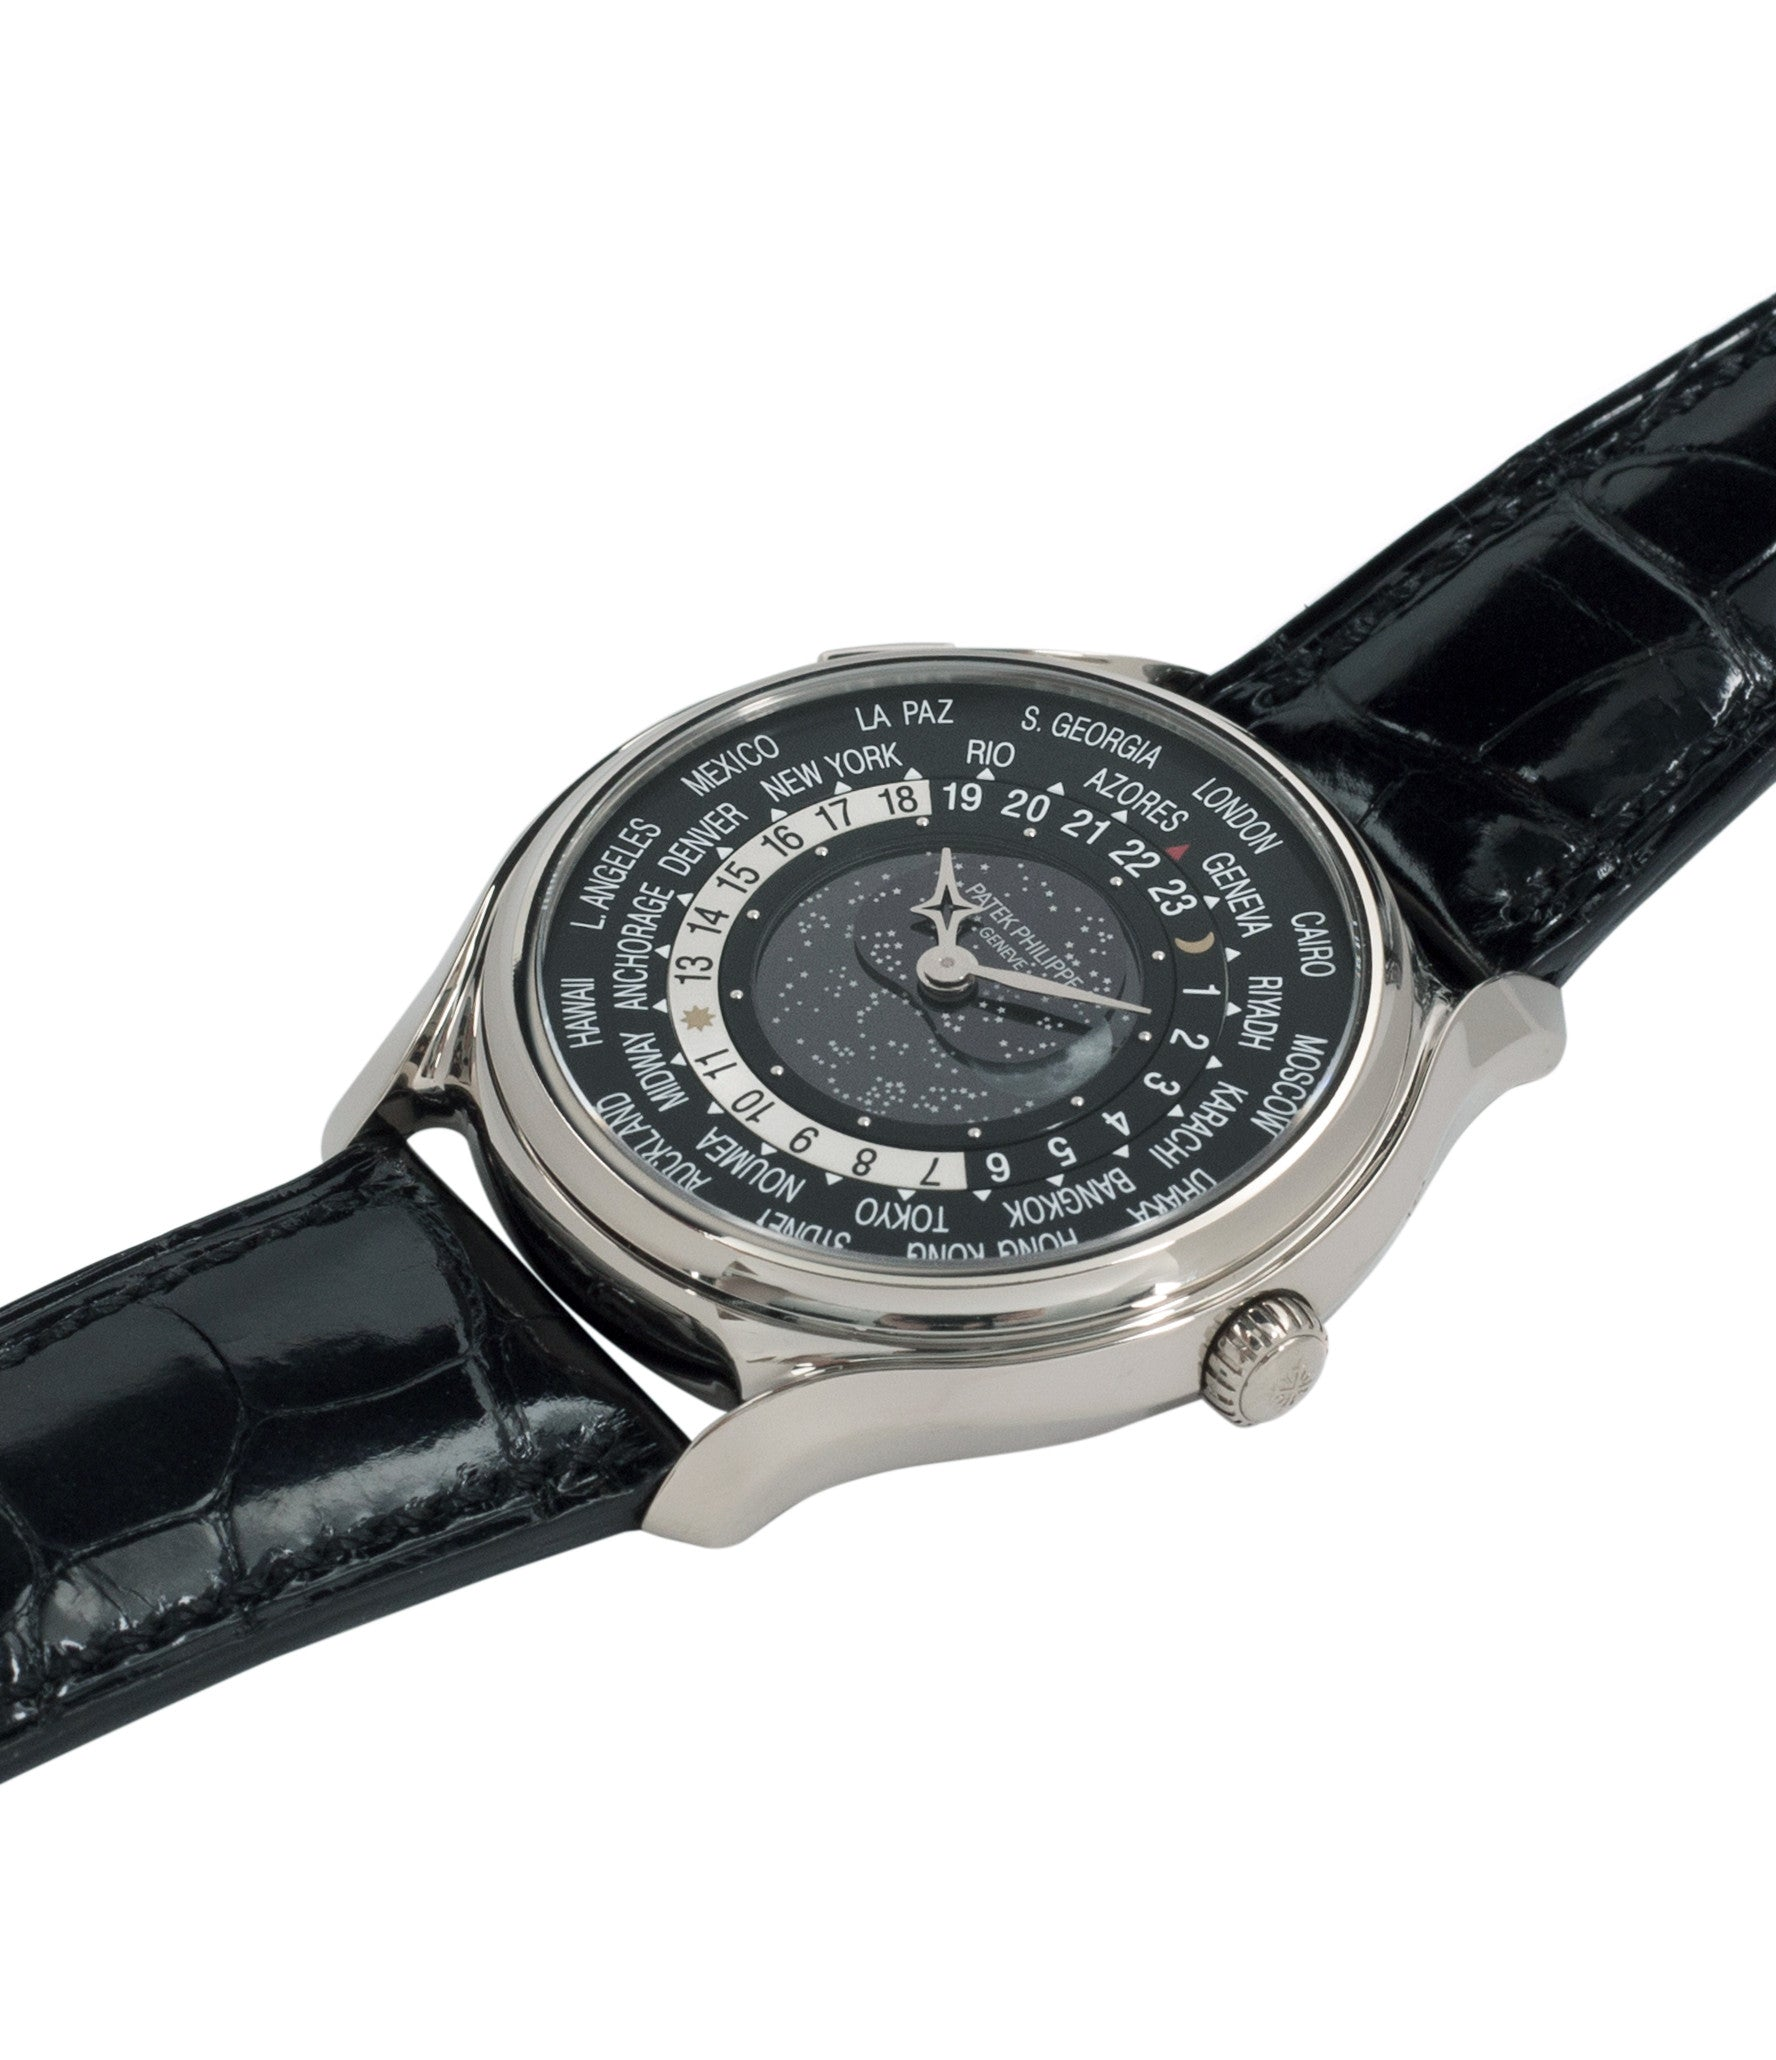 buy preowned Patek Philippe Worldtimer Moonphase 5575G 175th Anniversary white gold dress watch for sale online at A Collected Man London rare watch specialist